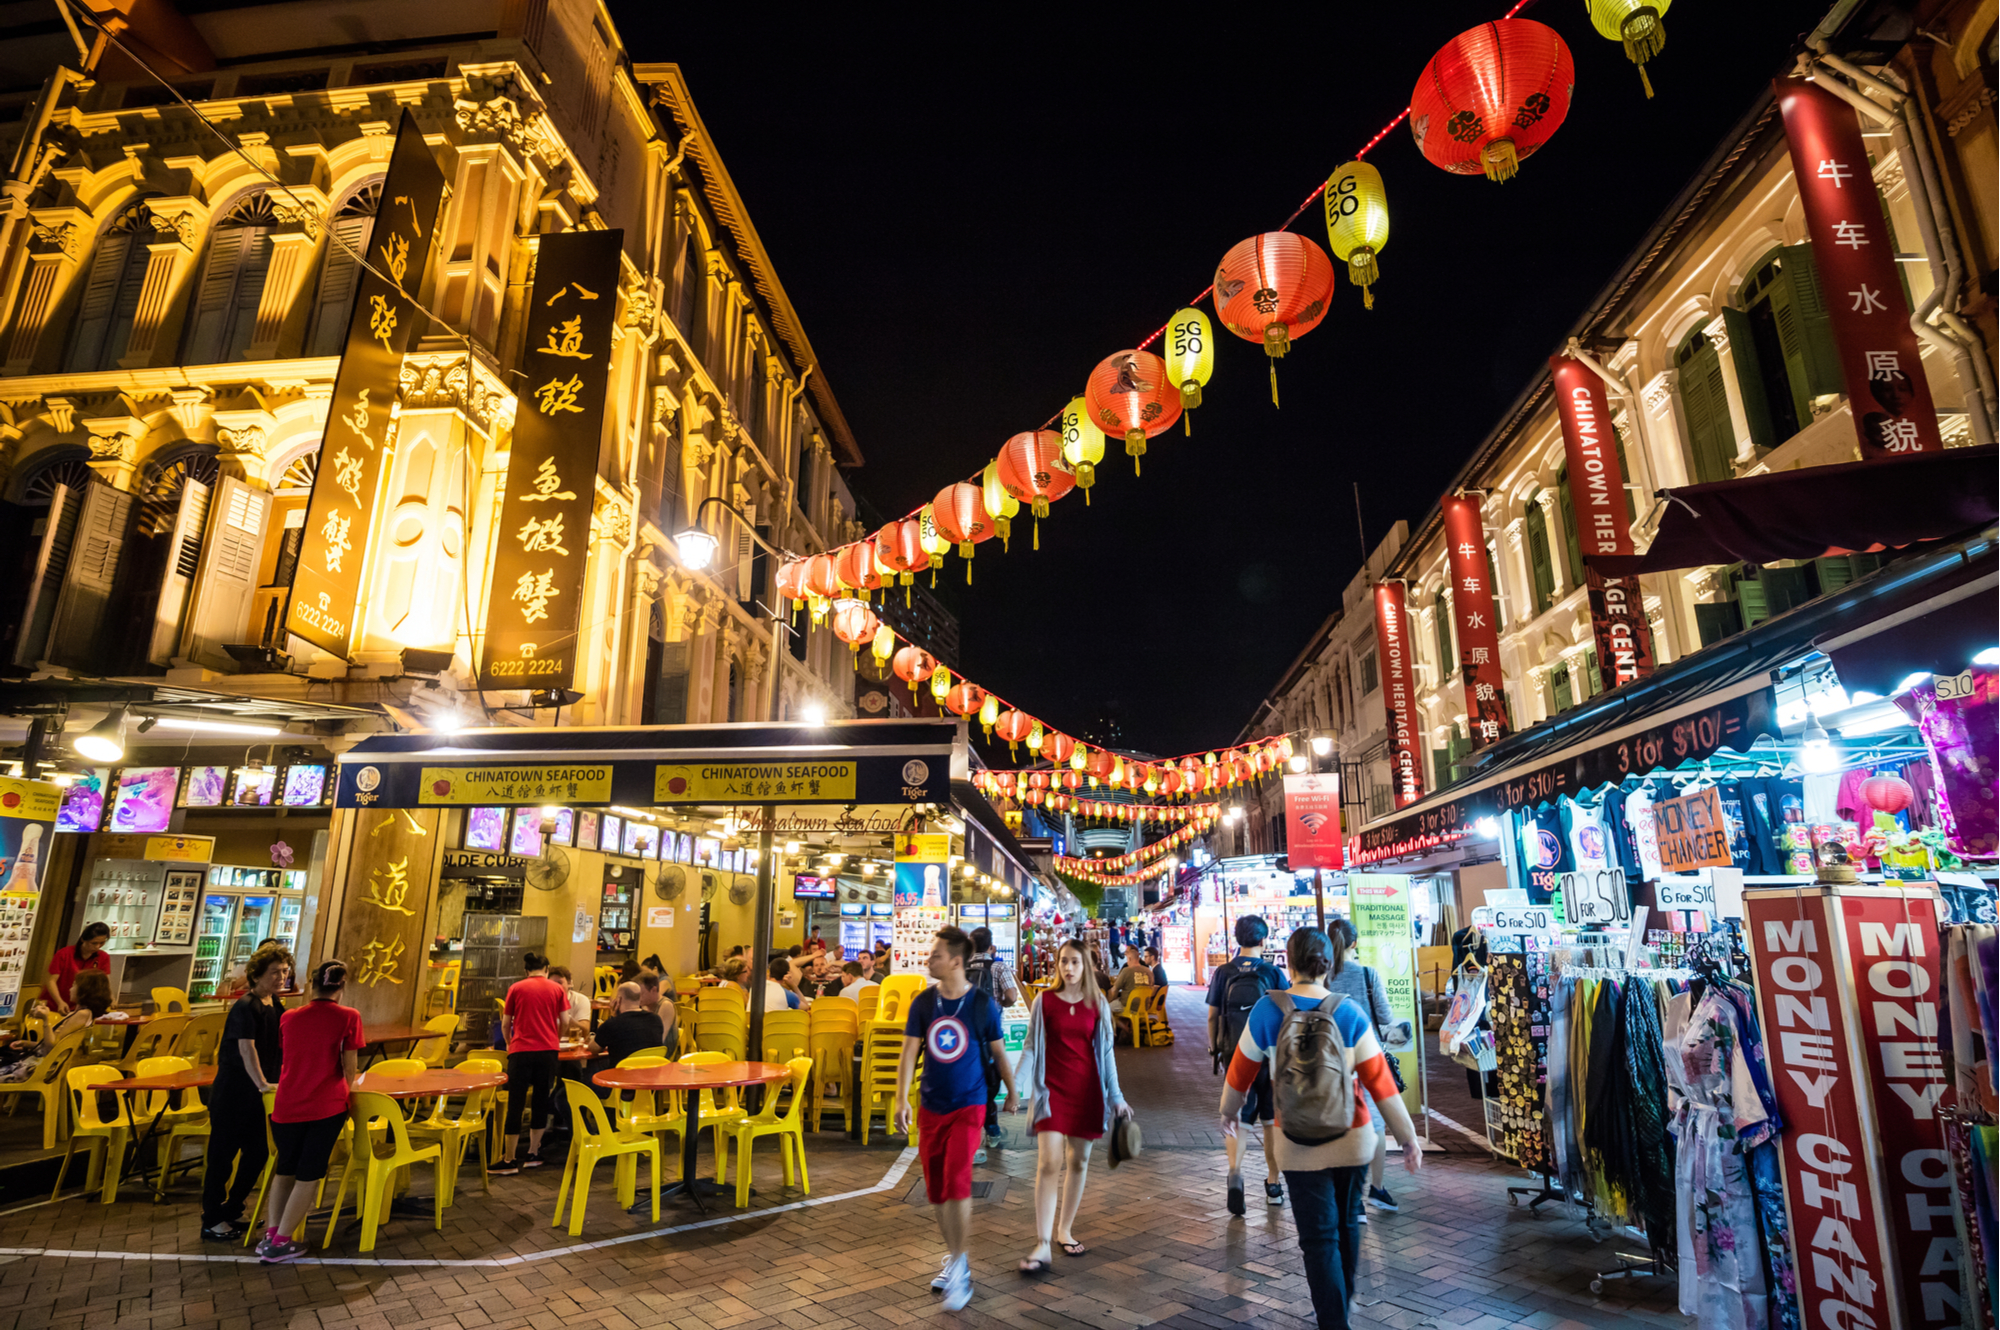 Chinatown at nighttime with lanterns criss-crossing a street filled with shoppers and restaurant-goers